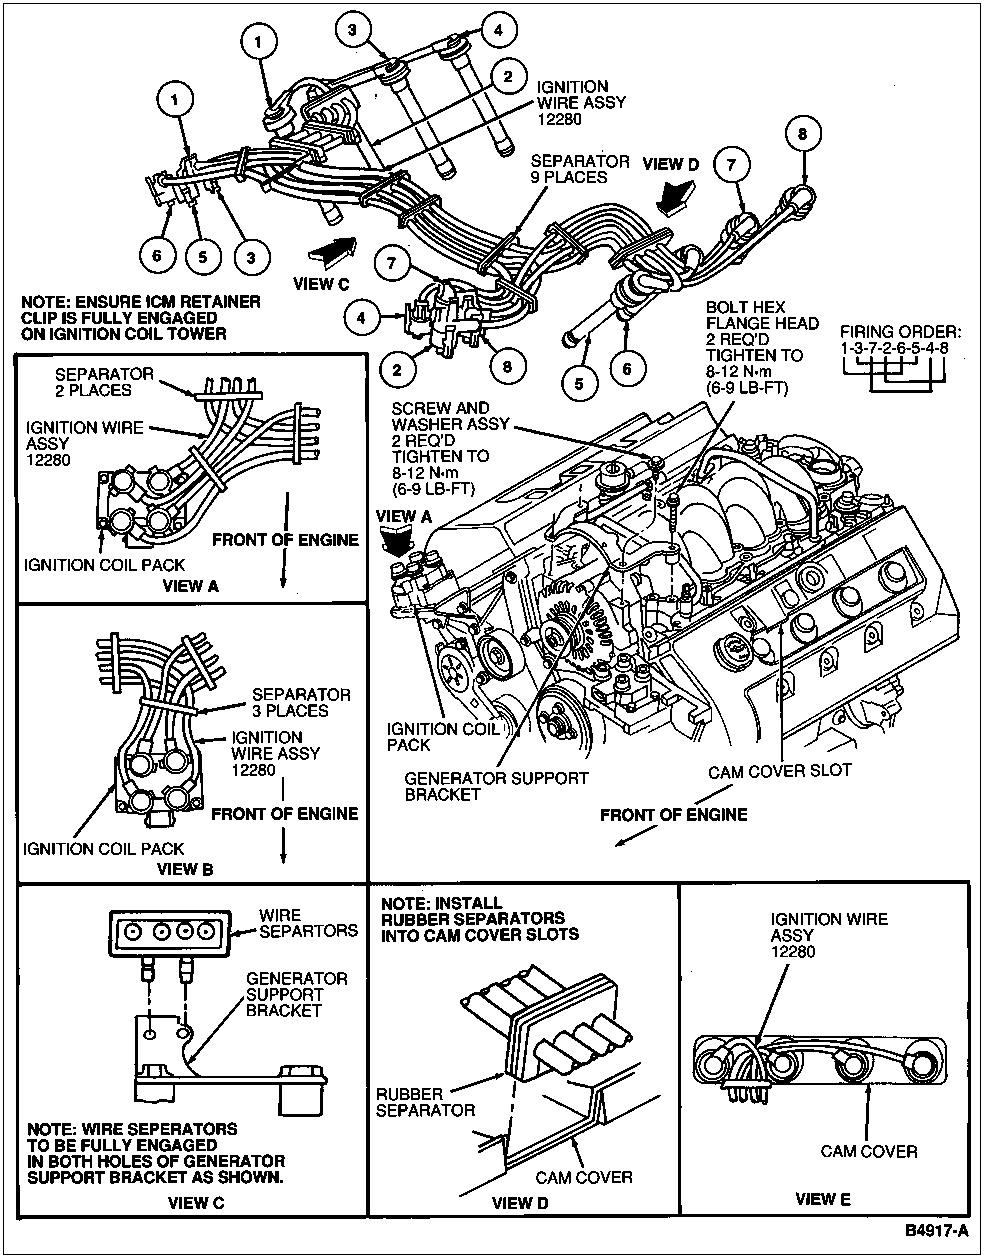 94 Mustang Fuel System Wiring Schematic Library 2000 Ford Fuse Diagram Lincoln Mark Viii Need Help Please Lincolns Online Message Forum Continental Problems